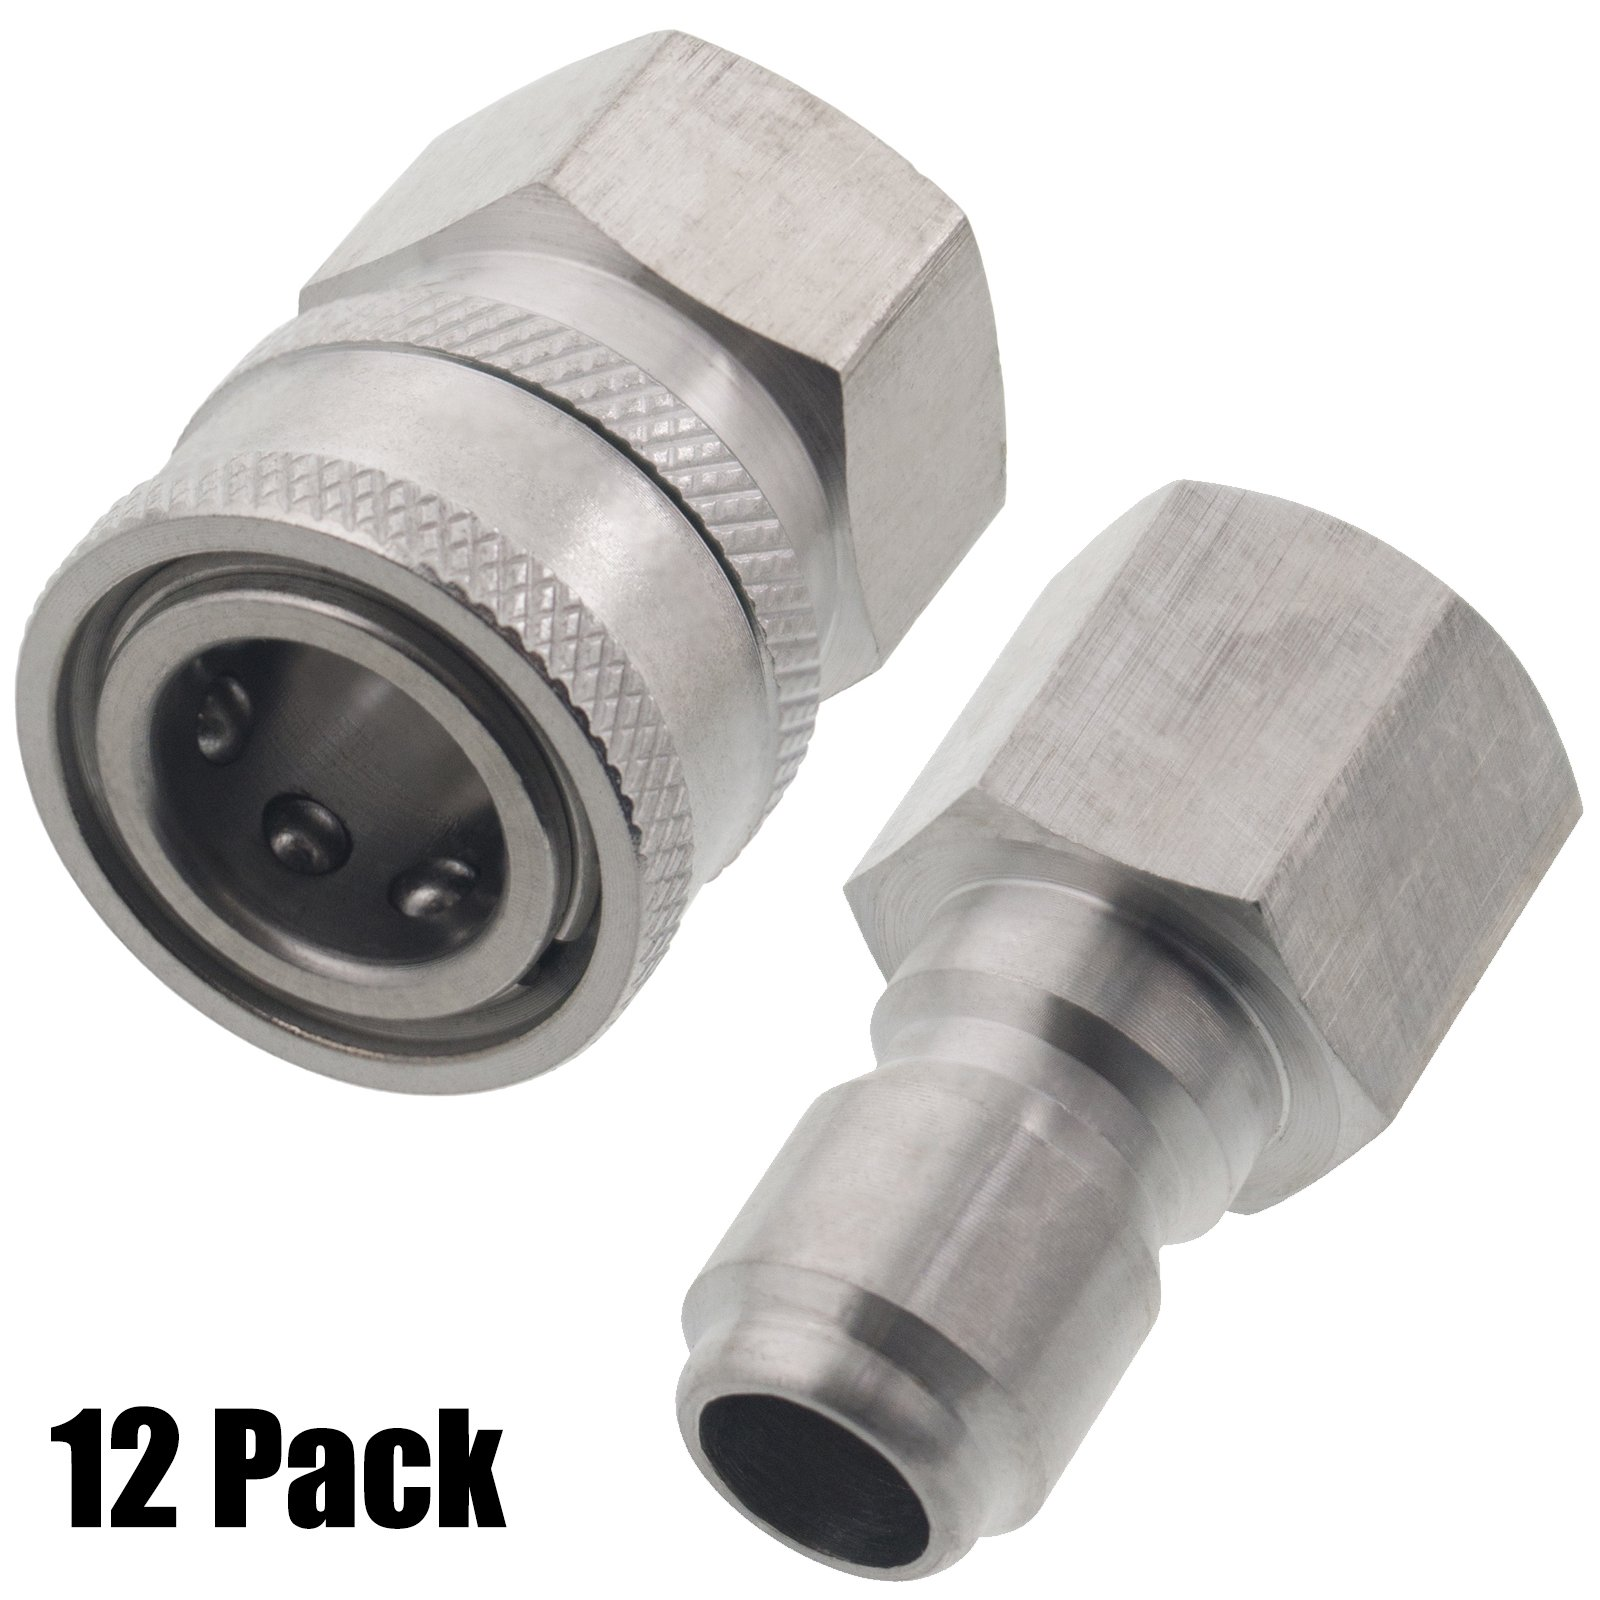 Erie Tools 12 Pressure Washer 3/8'' Female NPT Quick Connect Stainless Steel Socket Set and Plug, High Temp, 5000 PSI, 10.5 GPM